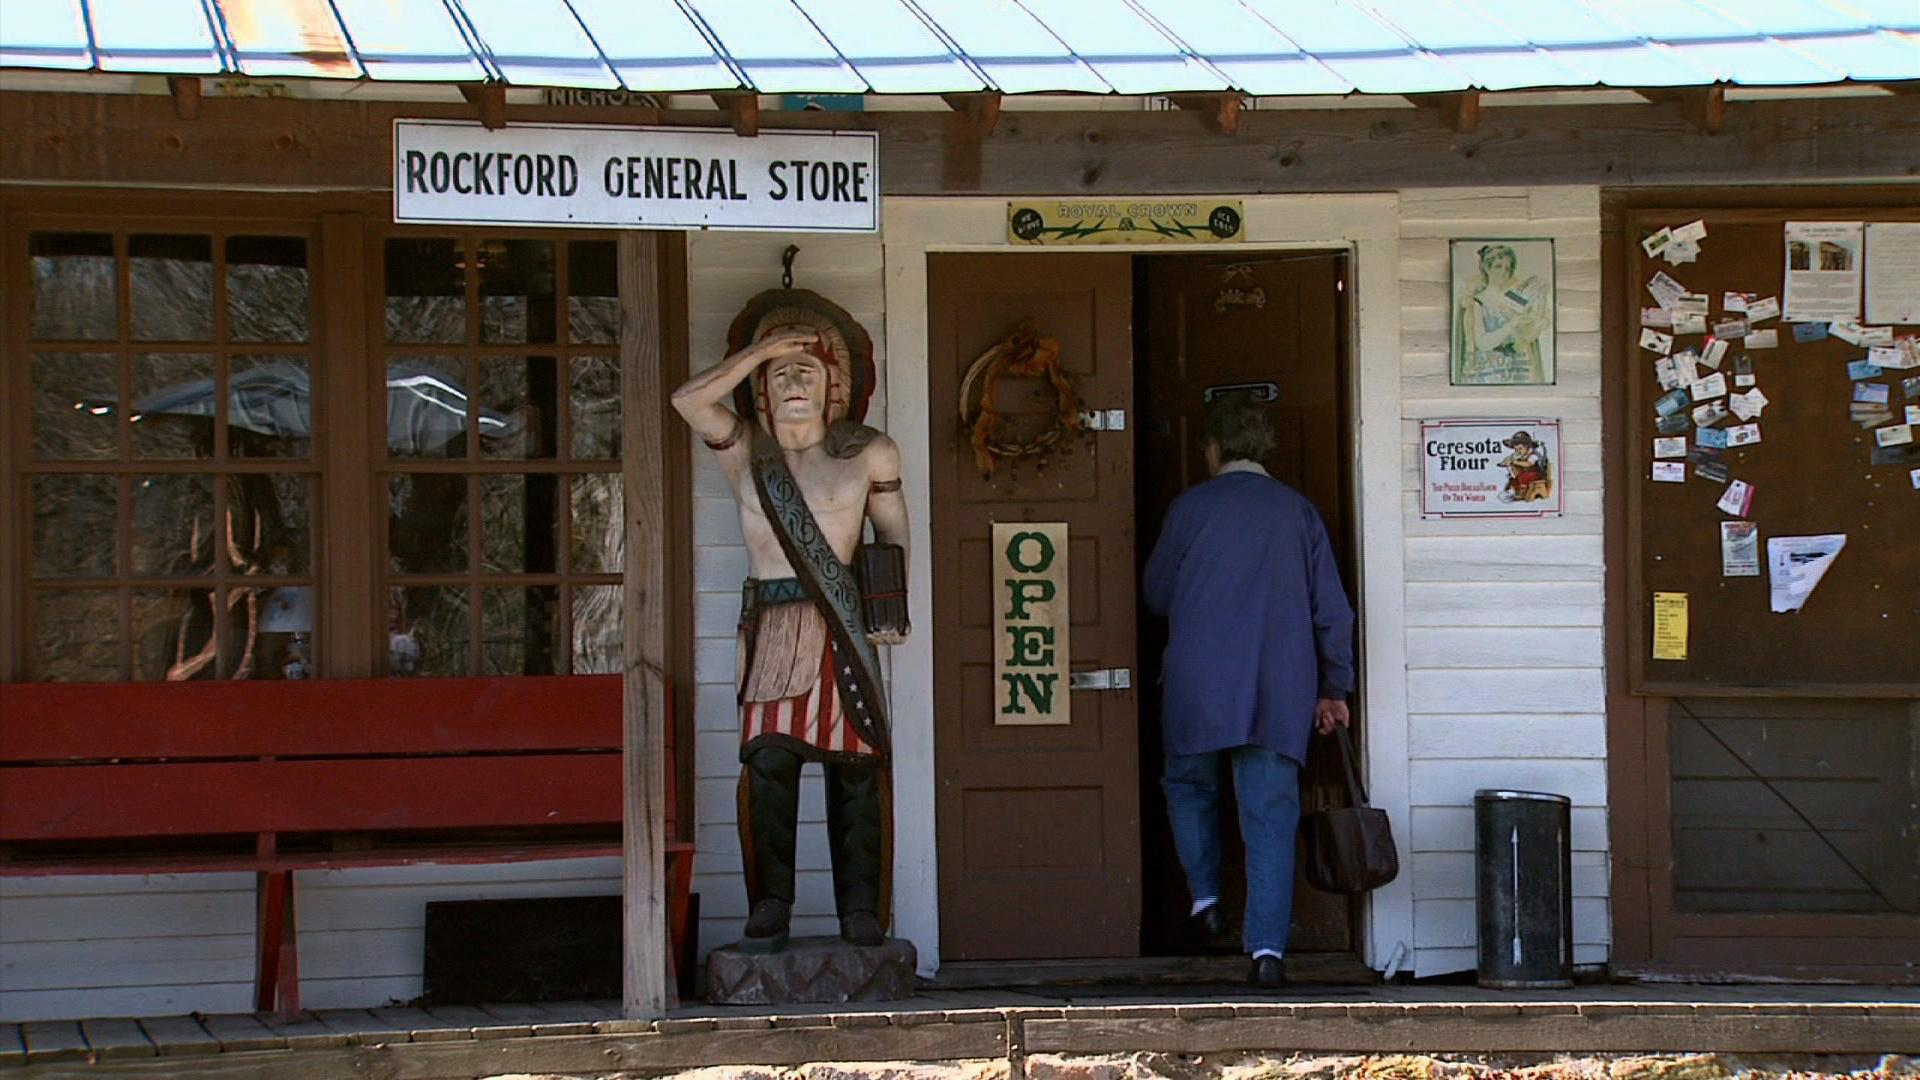 Rockford General Store image